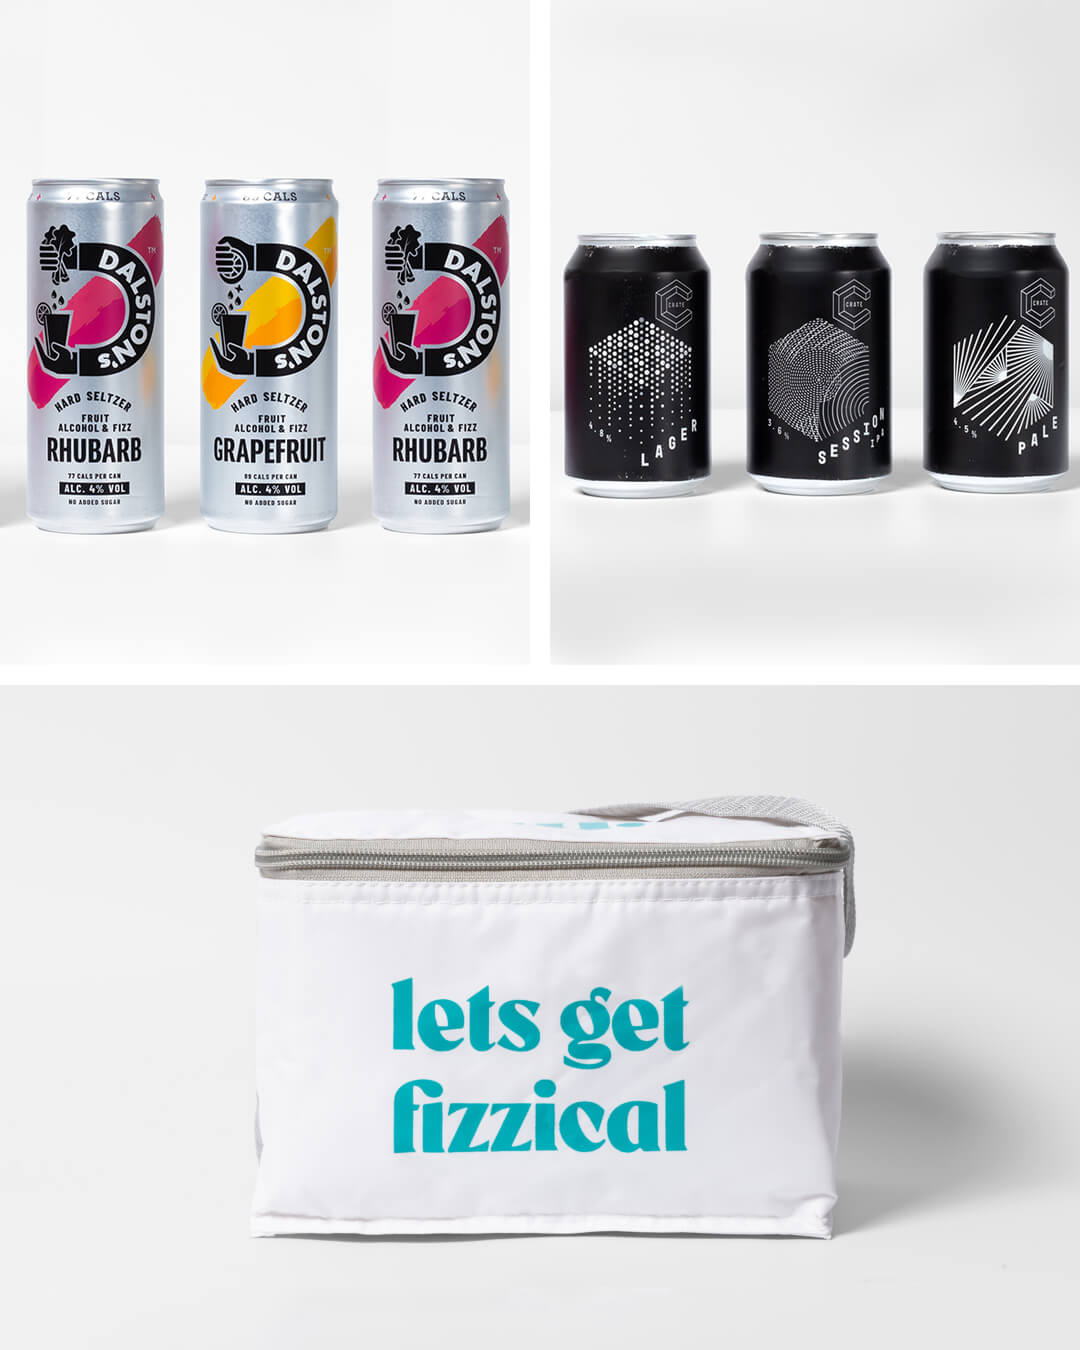 Crate Brewery, Dalston's hard seltzer cans & ta. cool bag